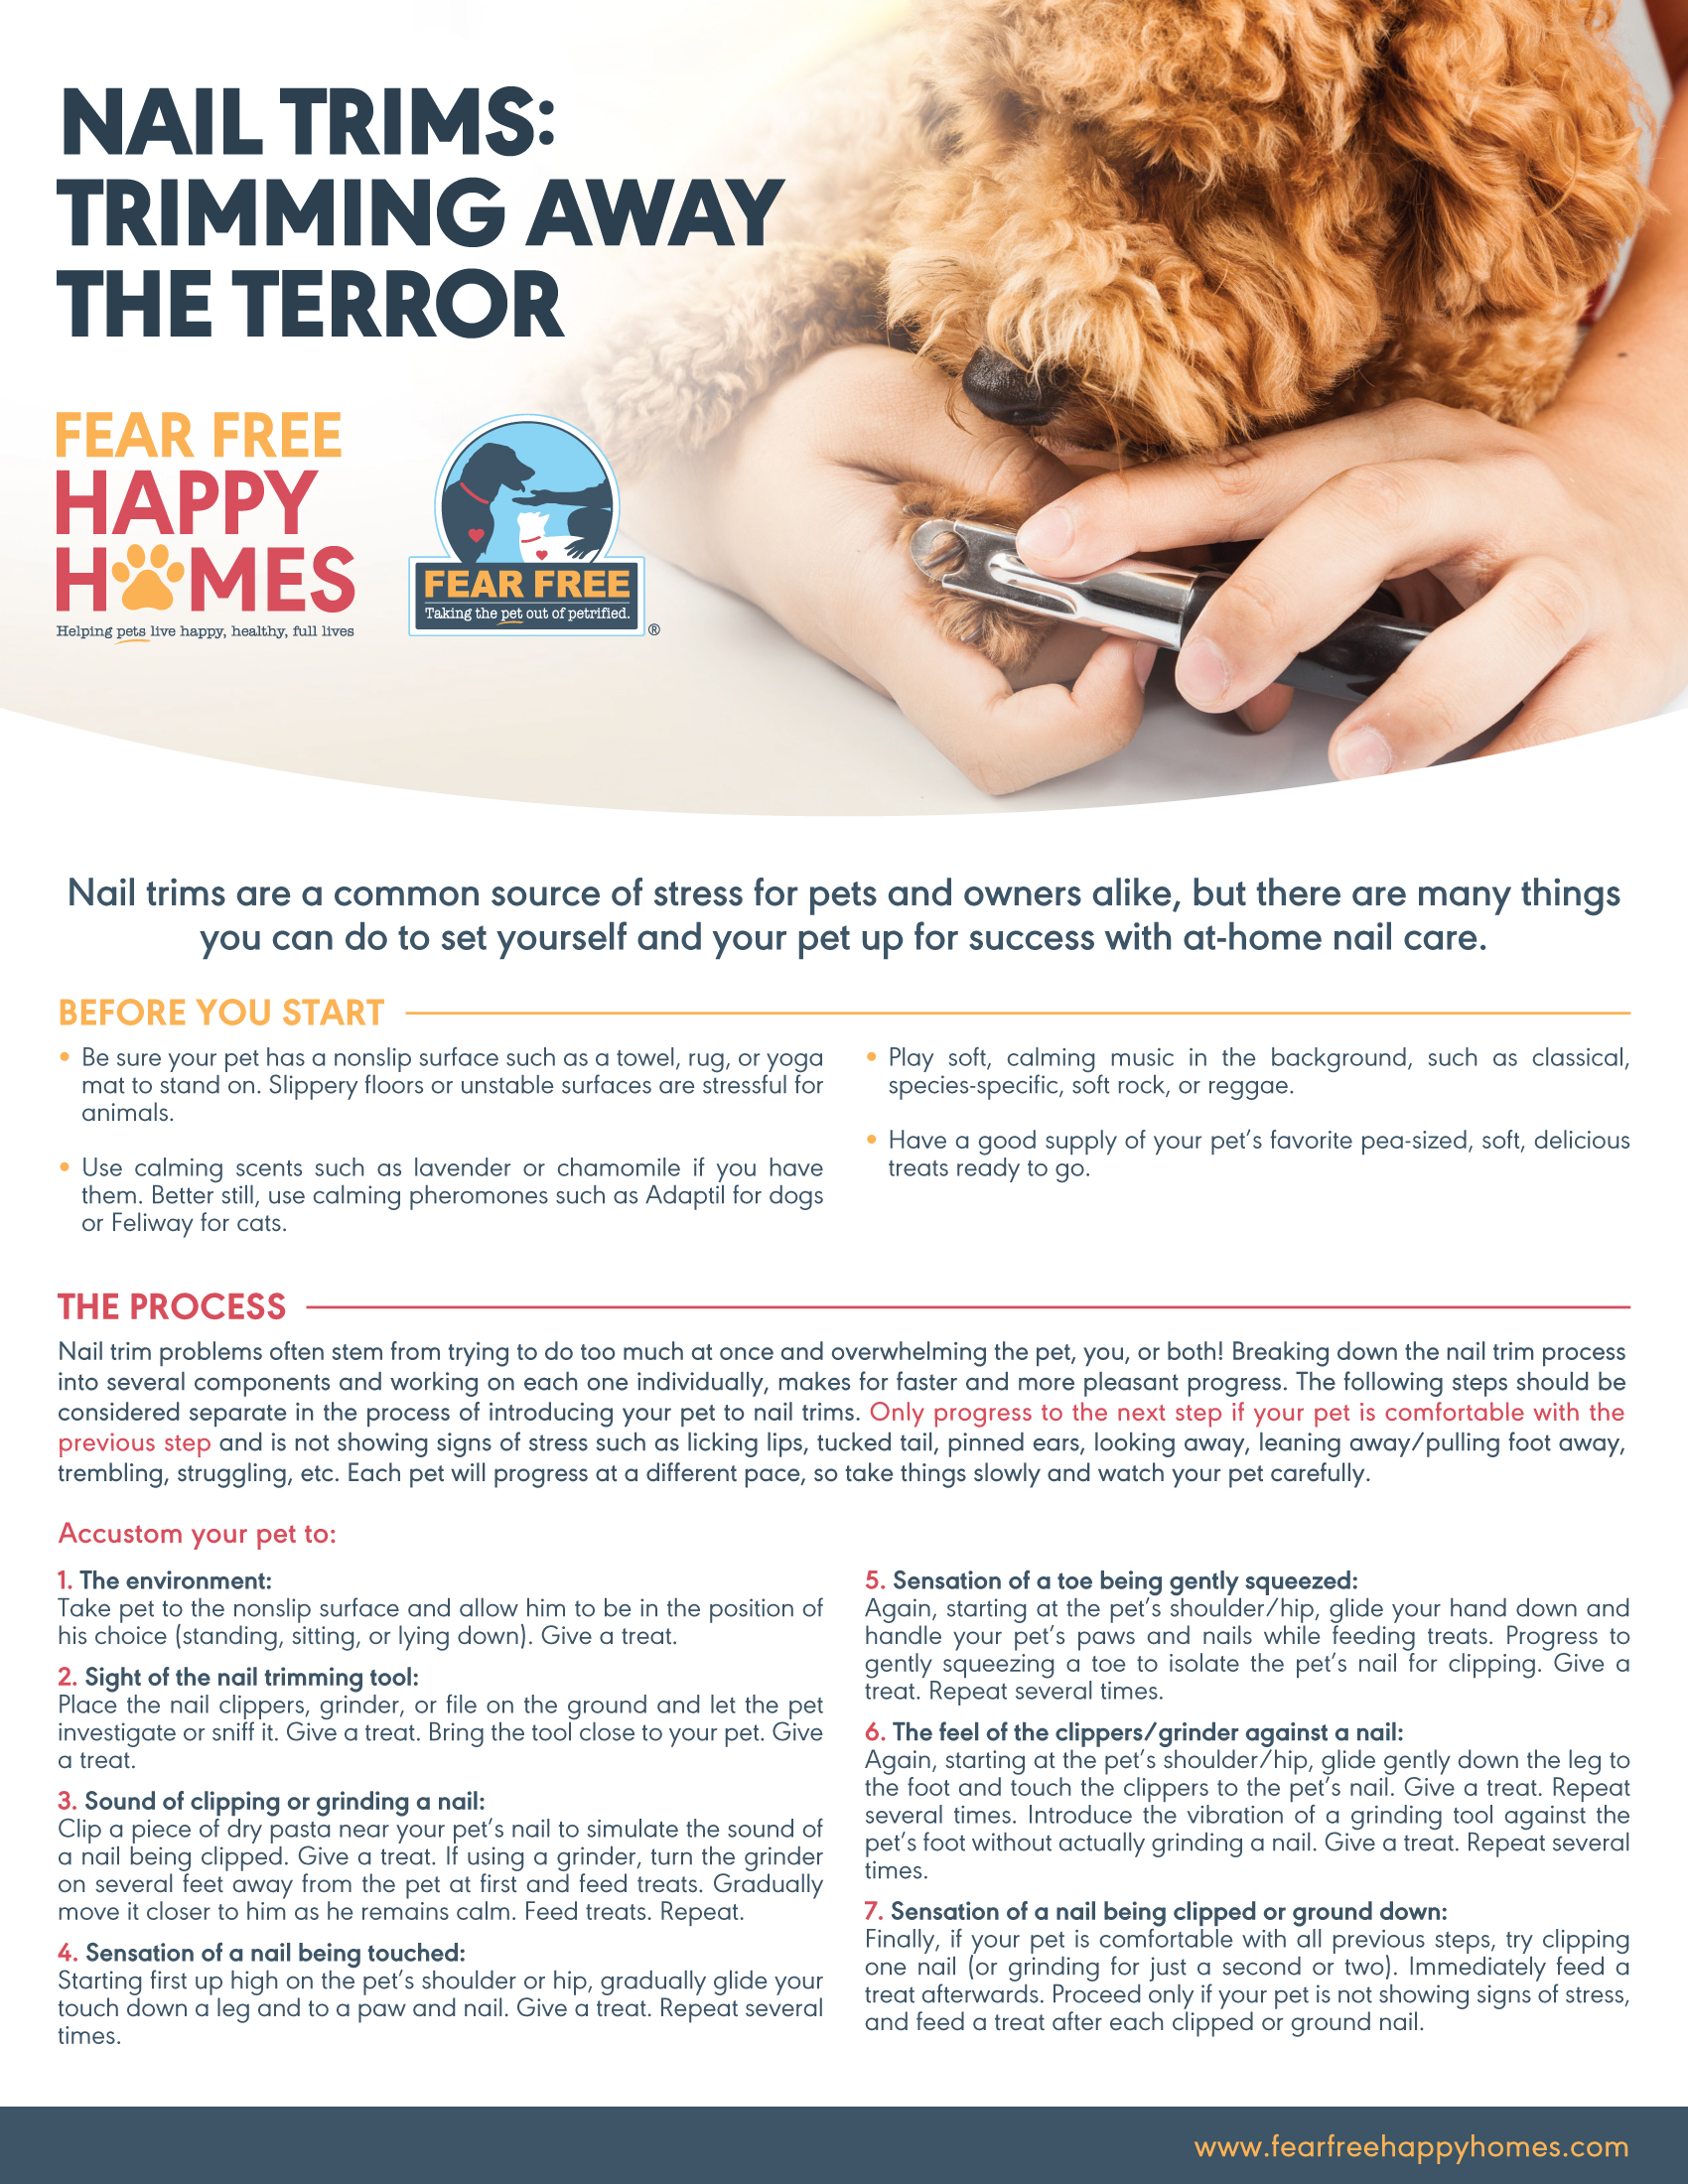 Nail Trims without Terror 1